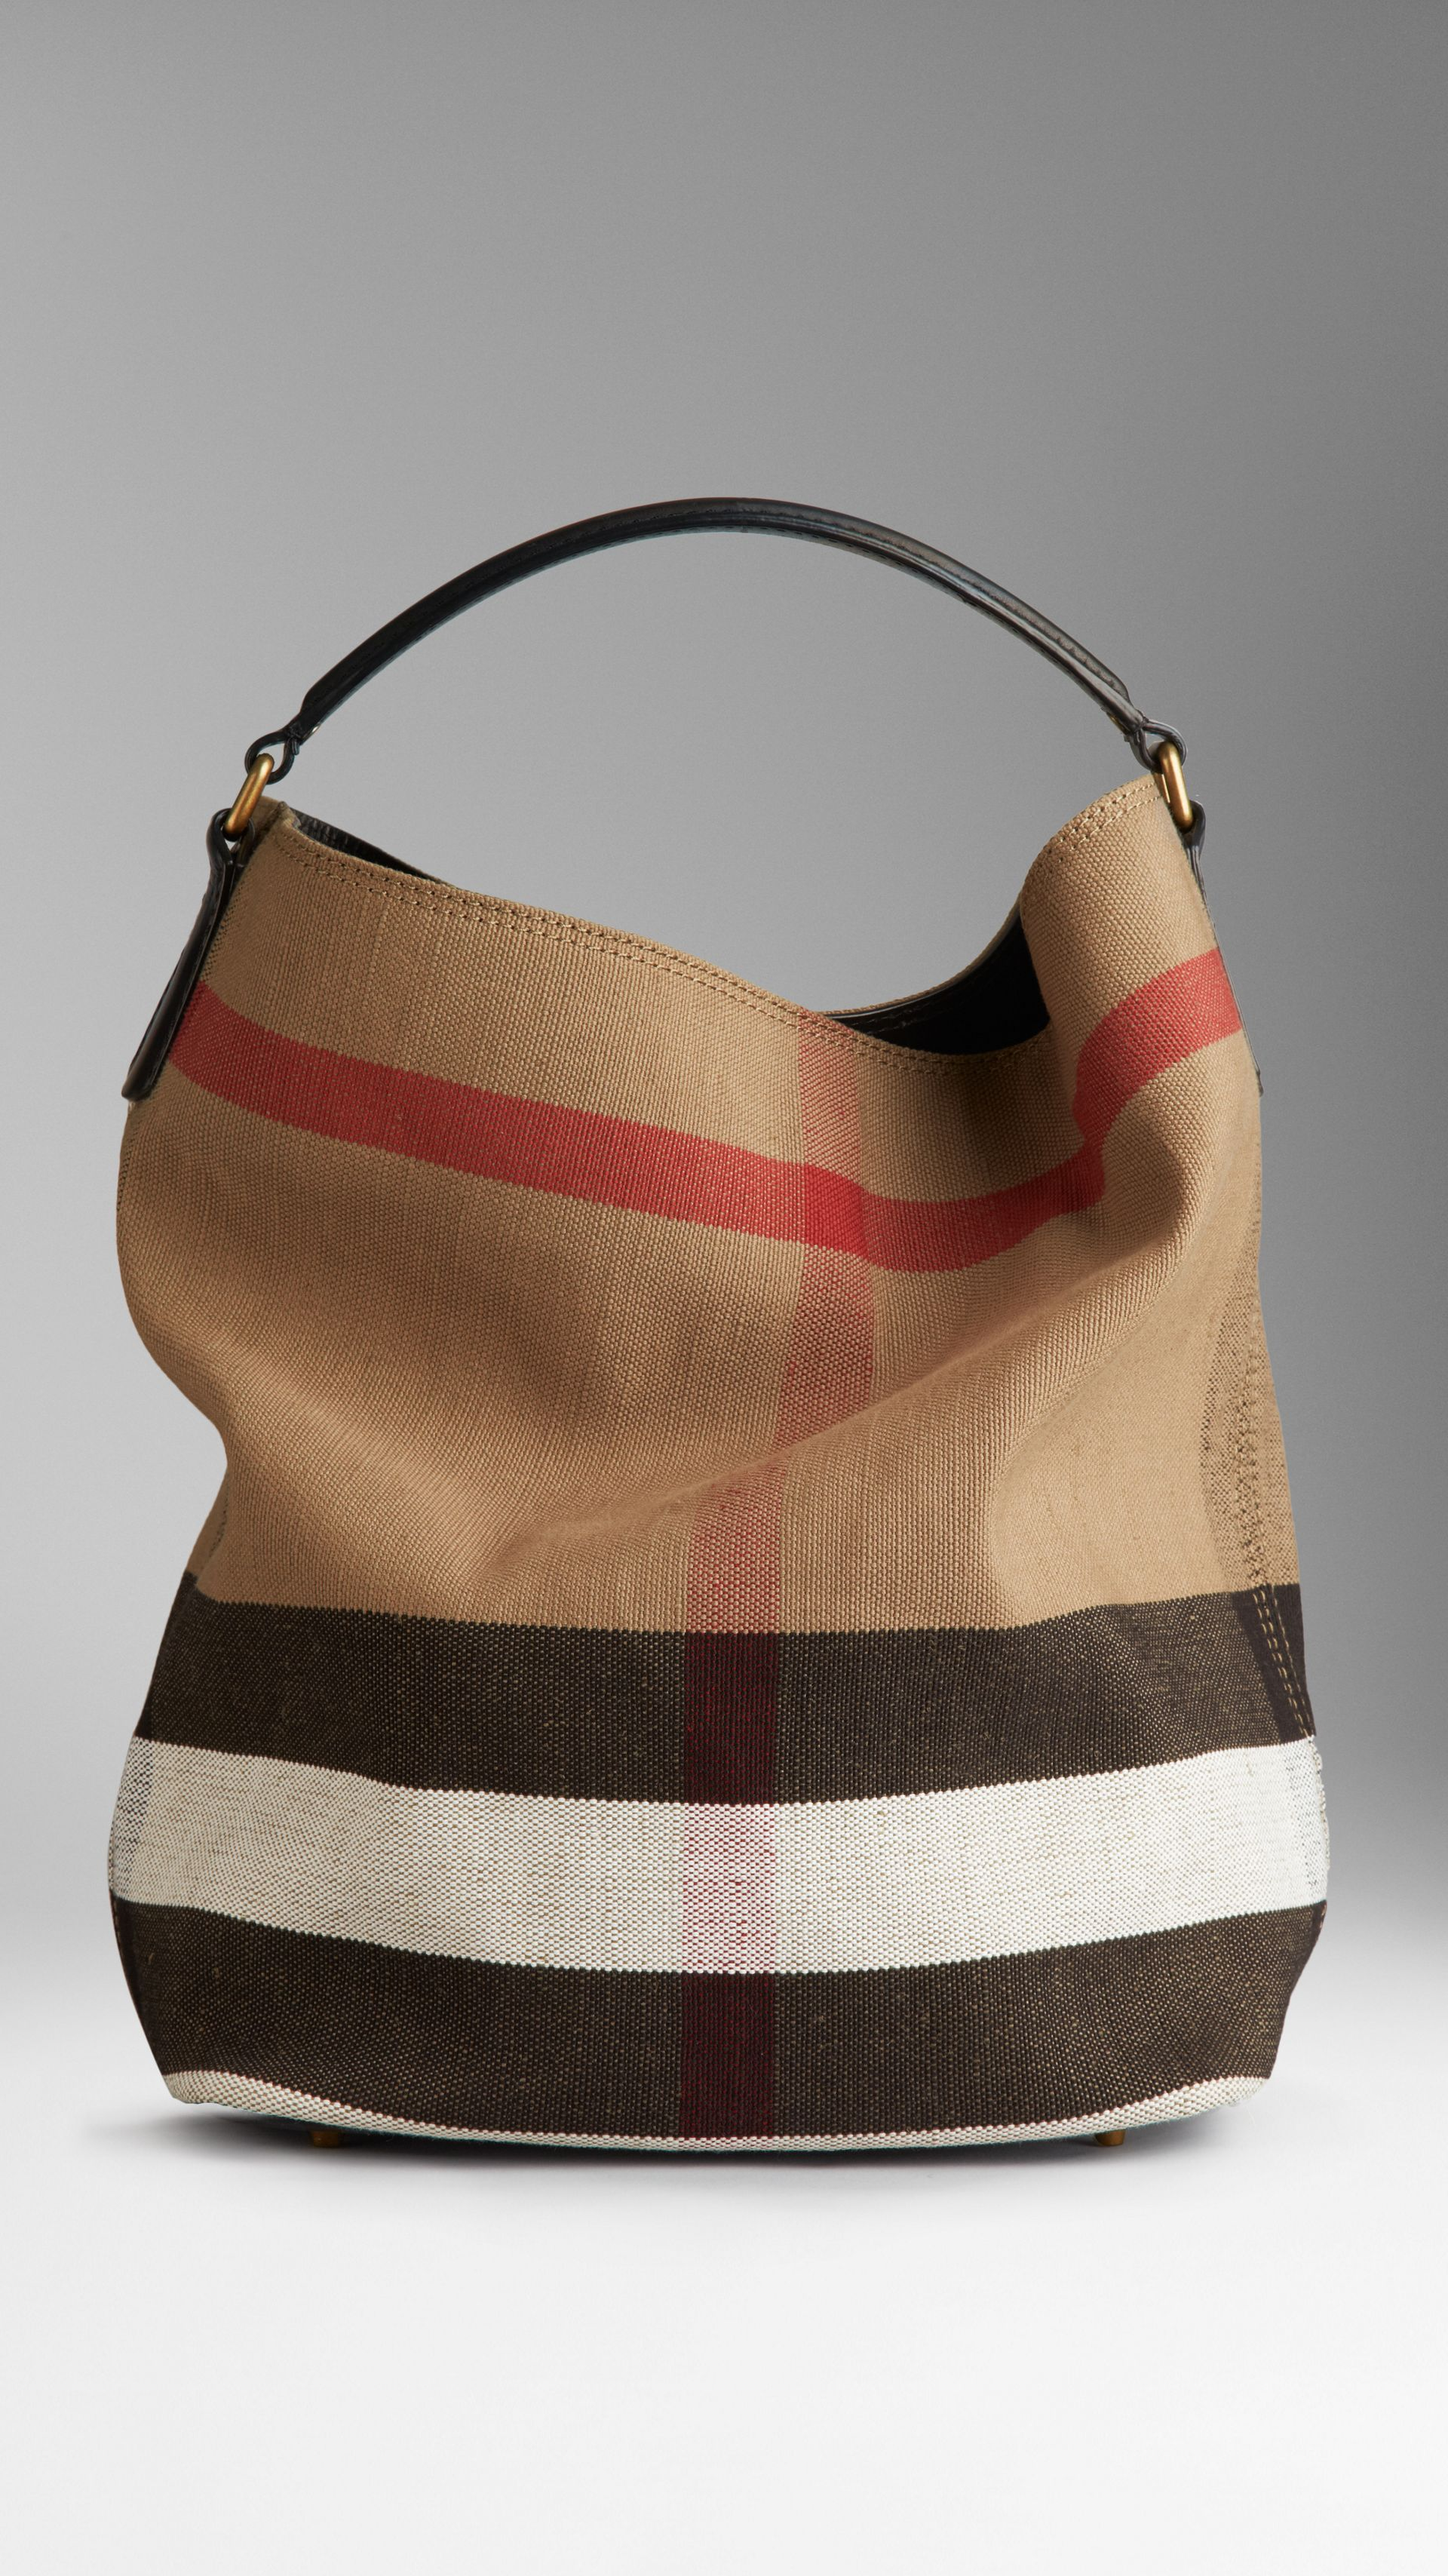 Medium Canvas Check Hobo Bag in Black - Women | Burberry - gallery image 1